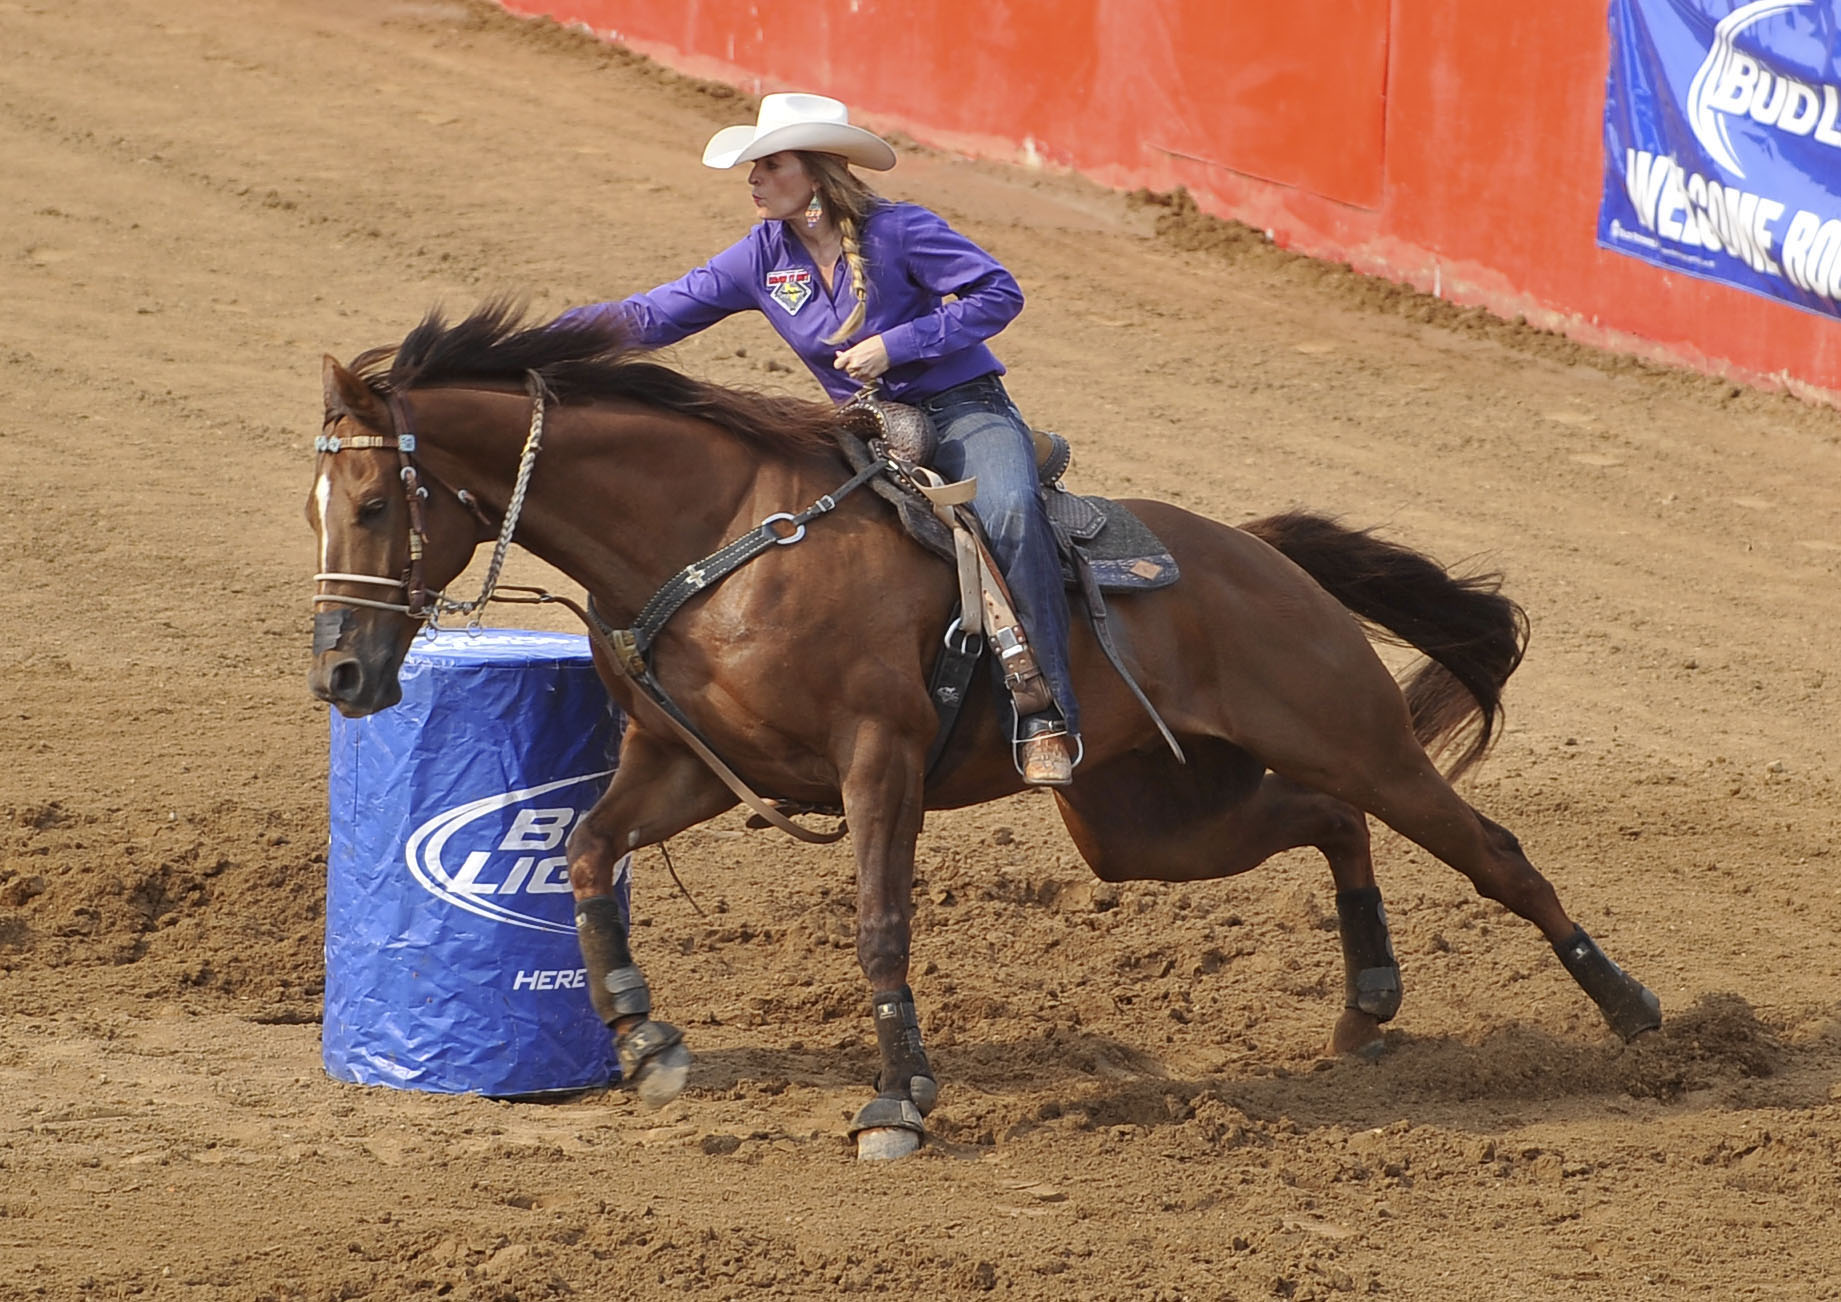 how to become a rodeo announcer